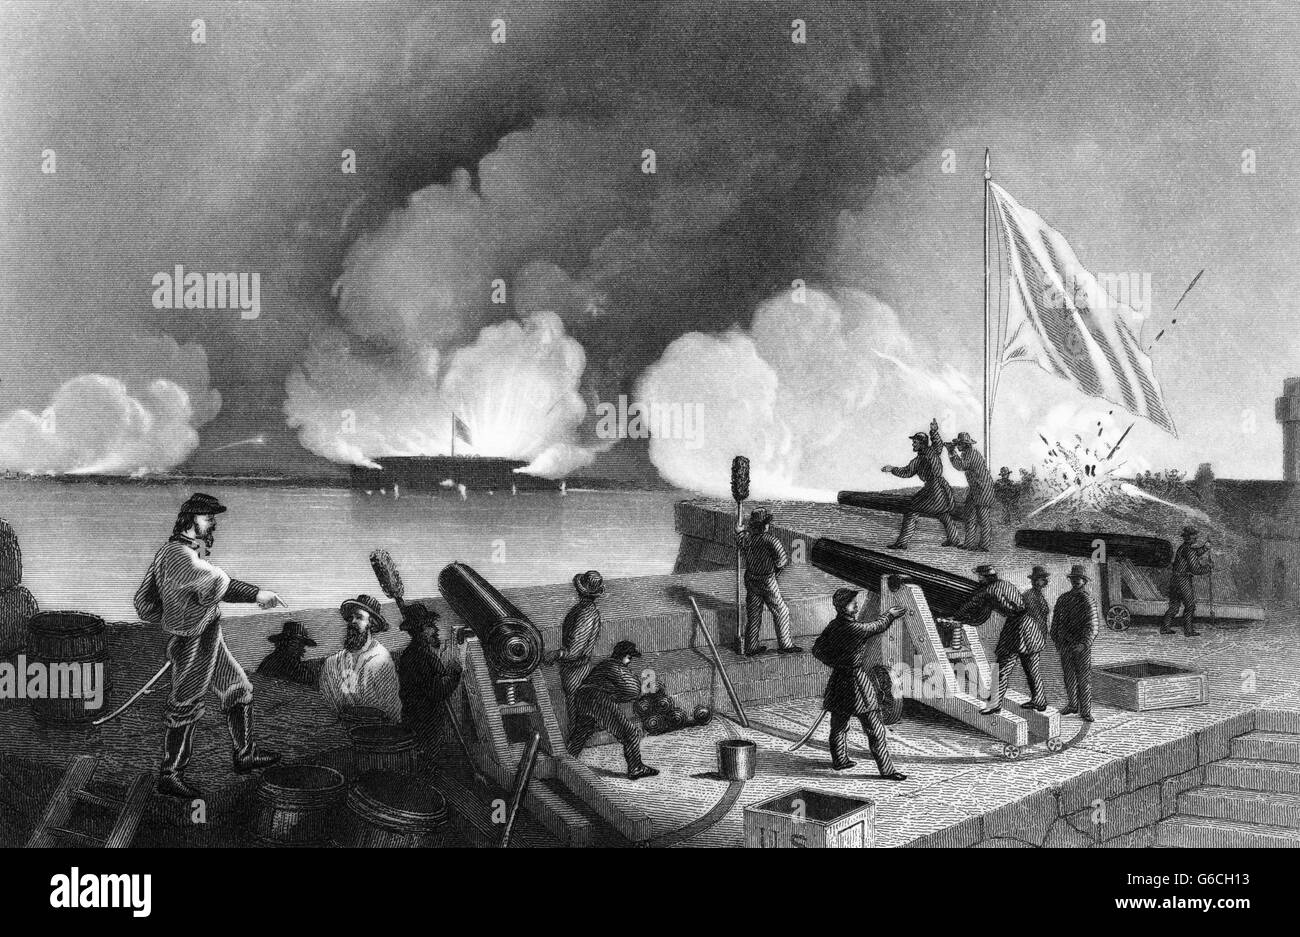 1860s APRIL 1861 BOMBARDMENT OF FORT SUMTER - Stock Image